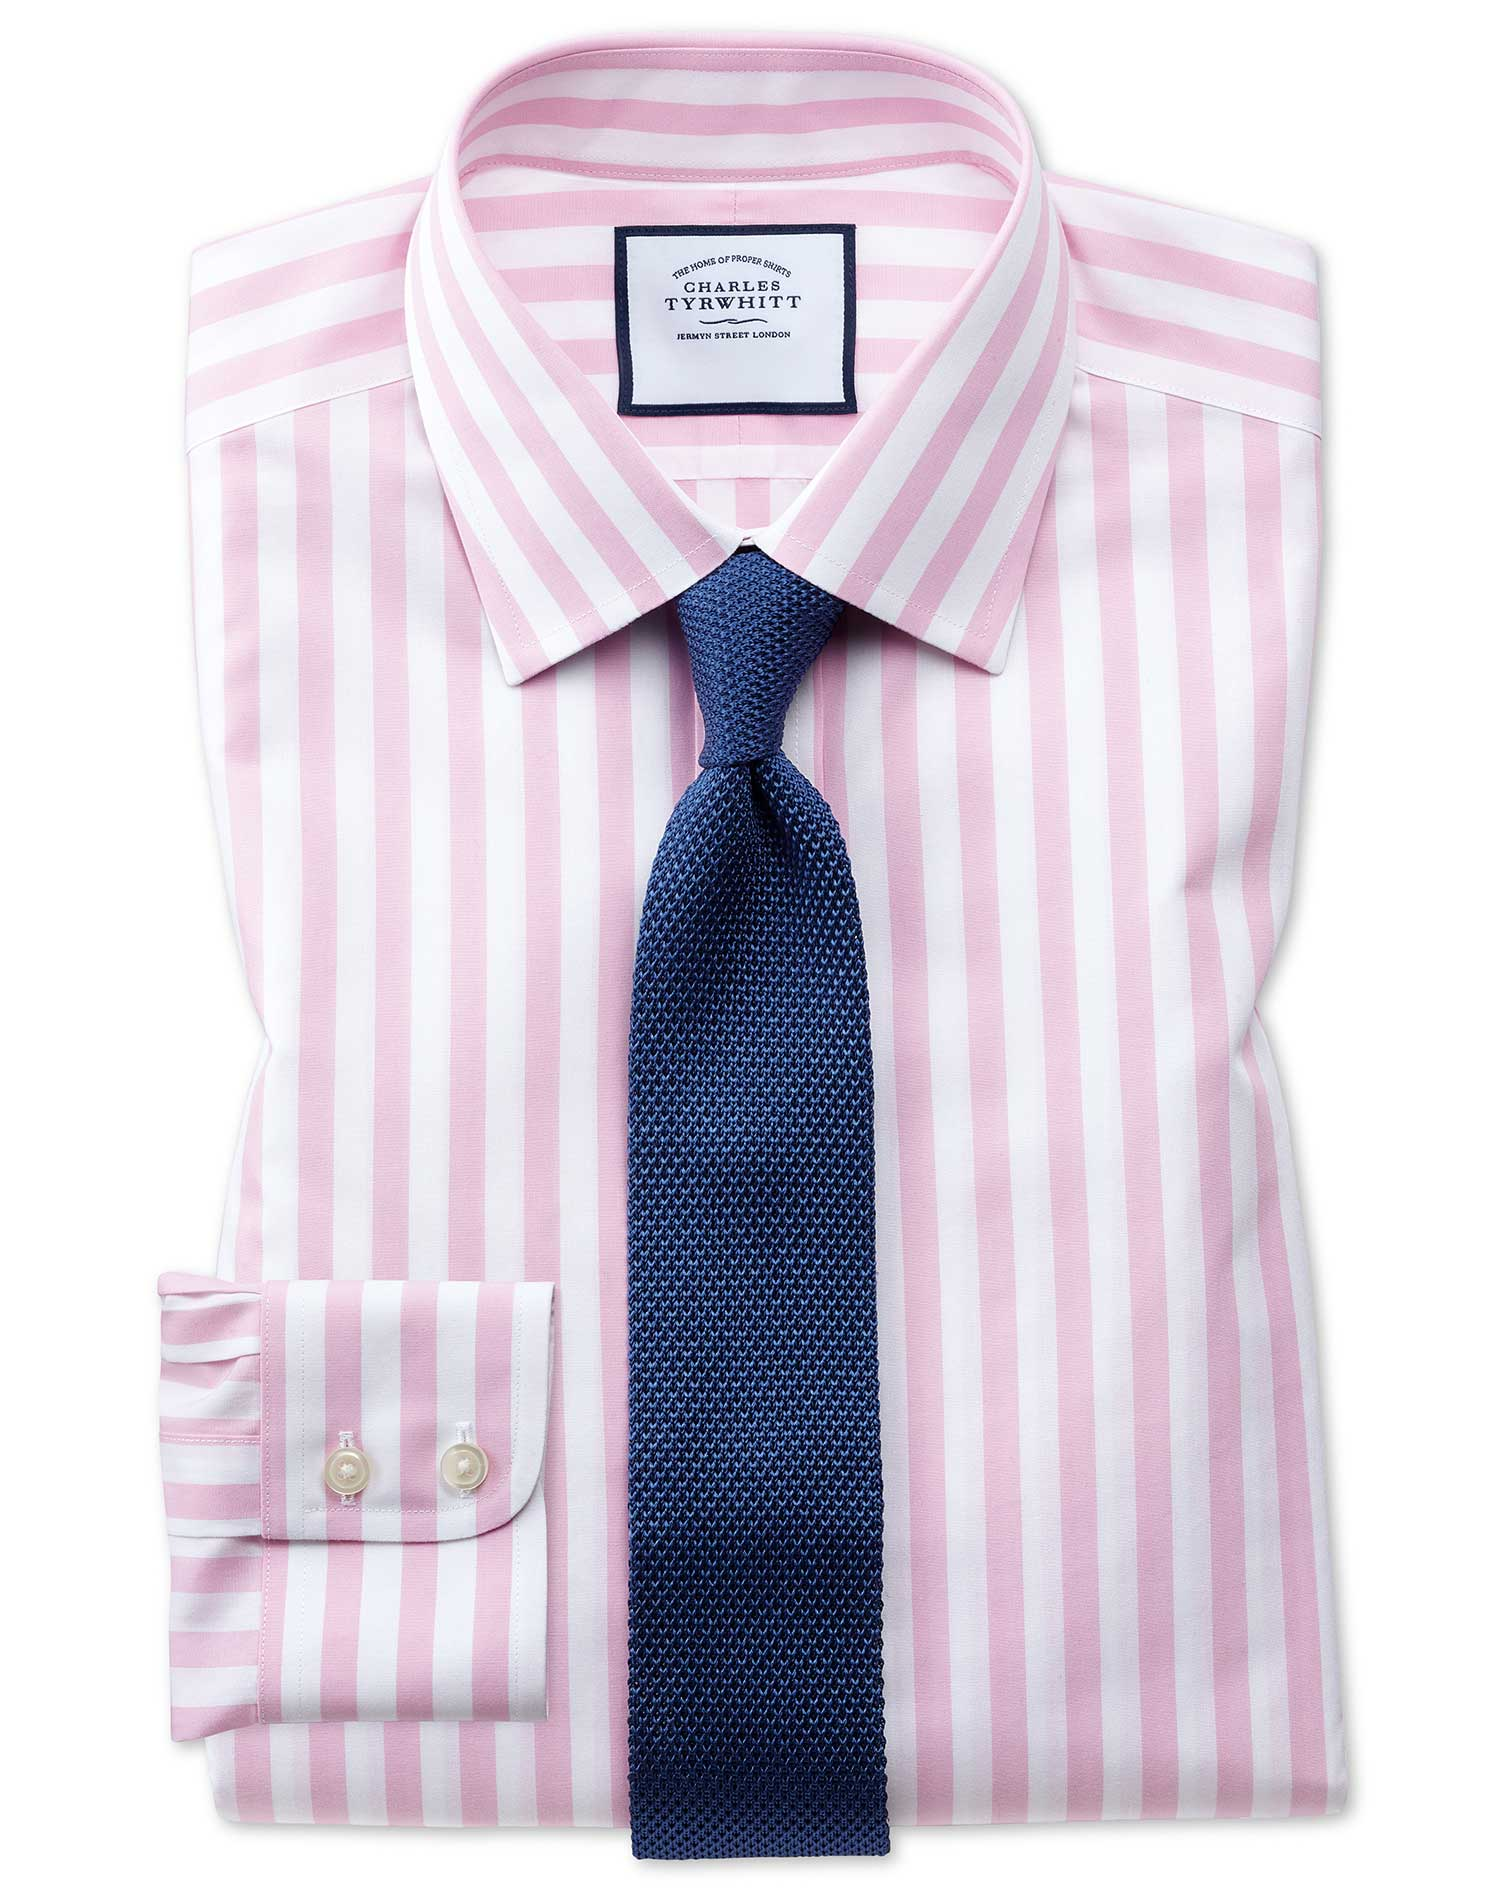 Classic Fit Non-Iron Pink Wide Bengal Stripe Cotton Formal Shirt Single Cuff Size 16.5/34 by Charles